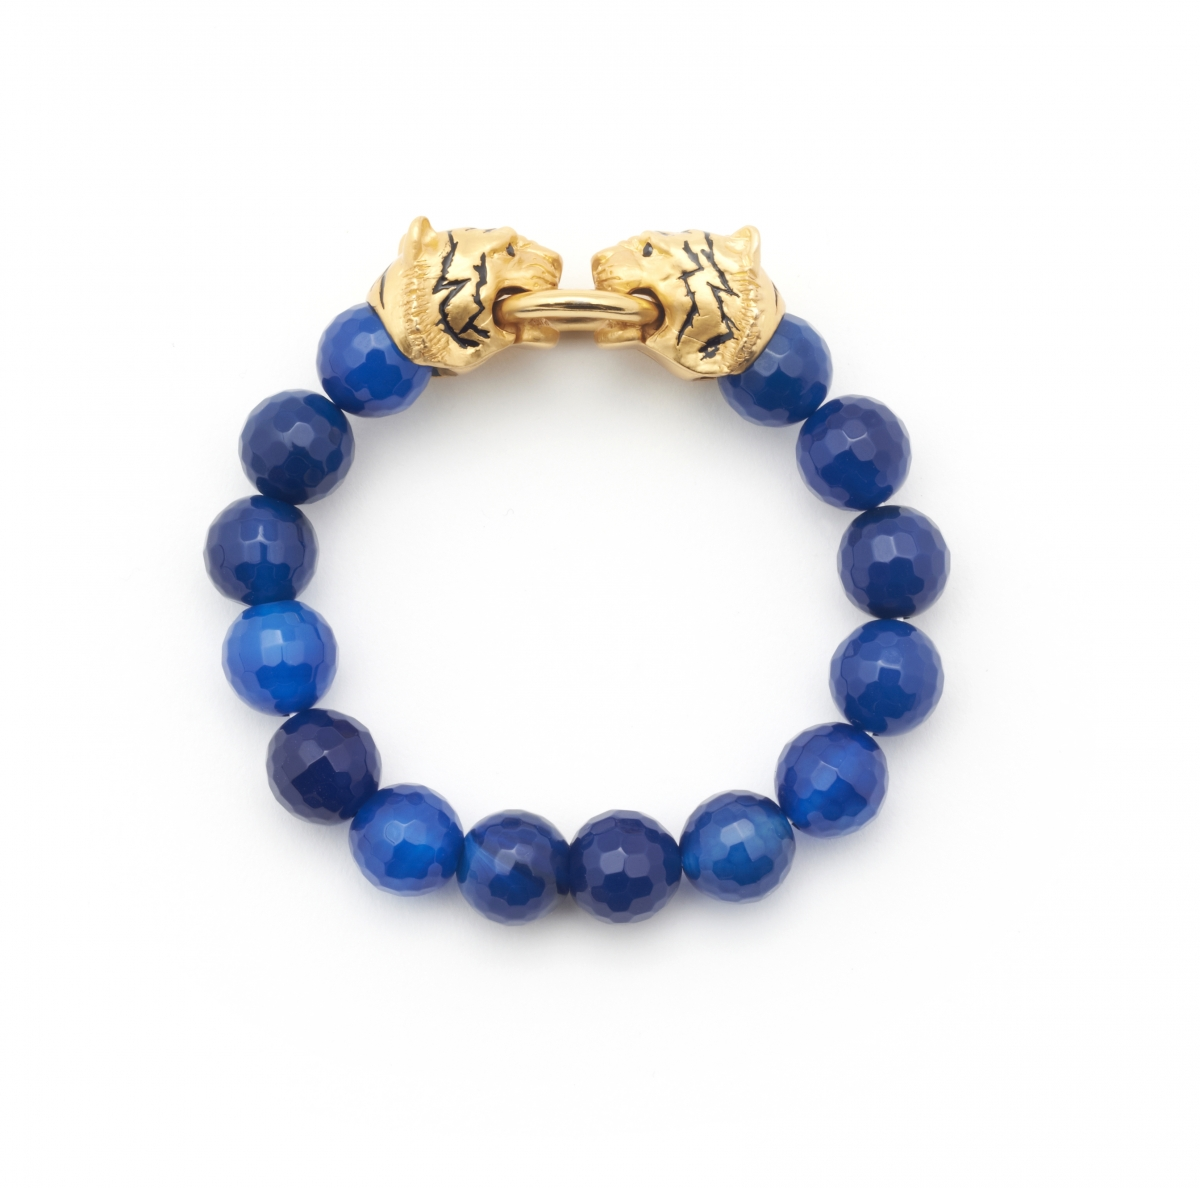 TIGER STRETCH DARK BLUE AGATE BRACELET